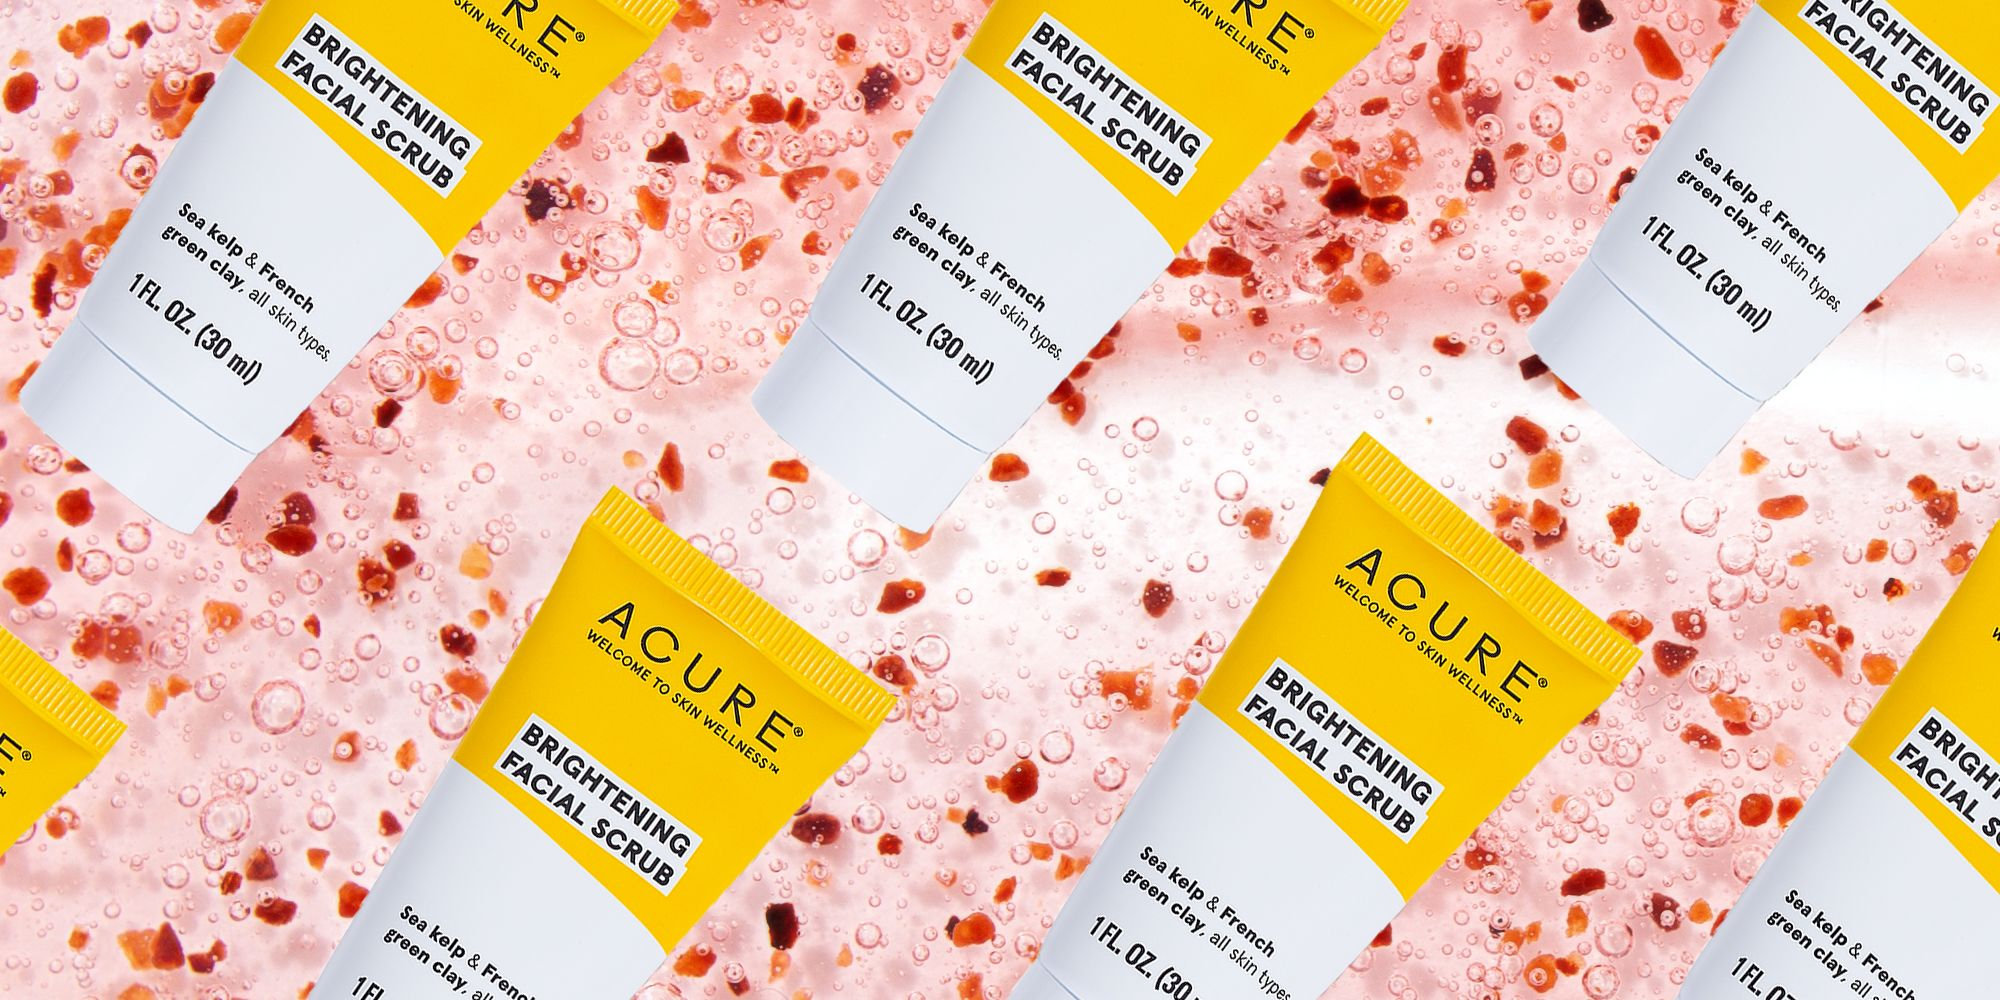 Acure Brightening Facial Scrub is clearing people's acne